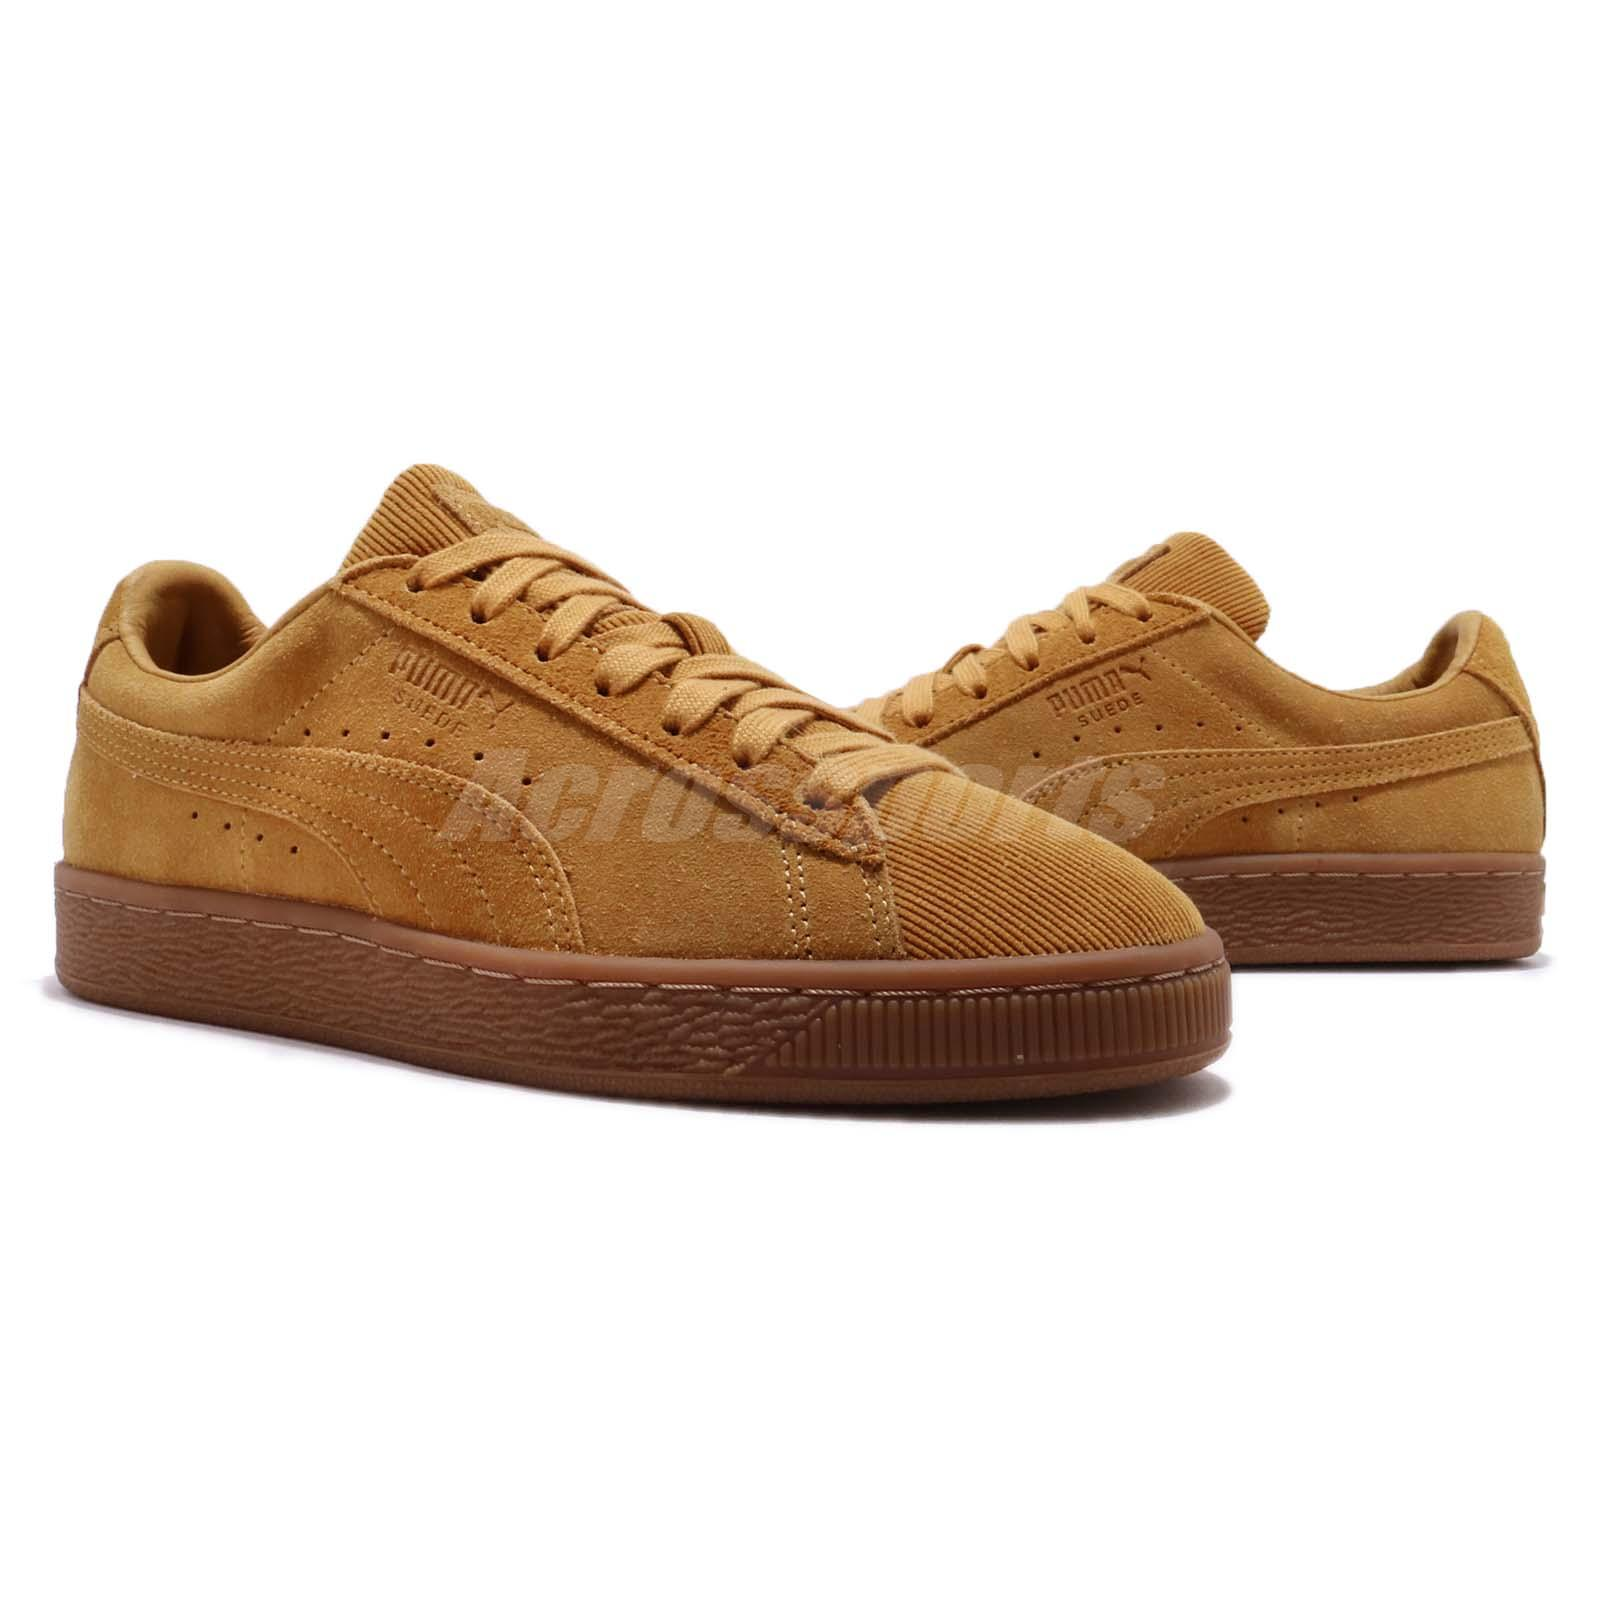 Puma Suede Classic Pincord Buckthorn Brown Gum Men Casual Shoe ... a81d2b51a